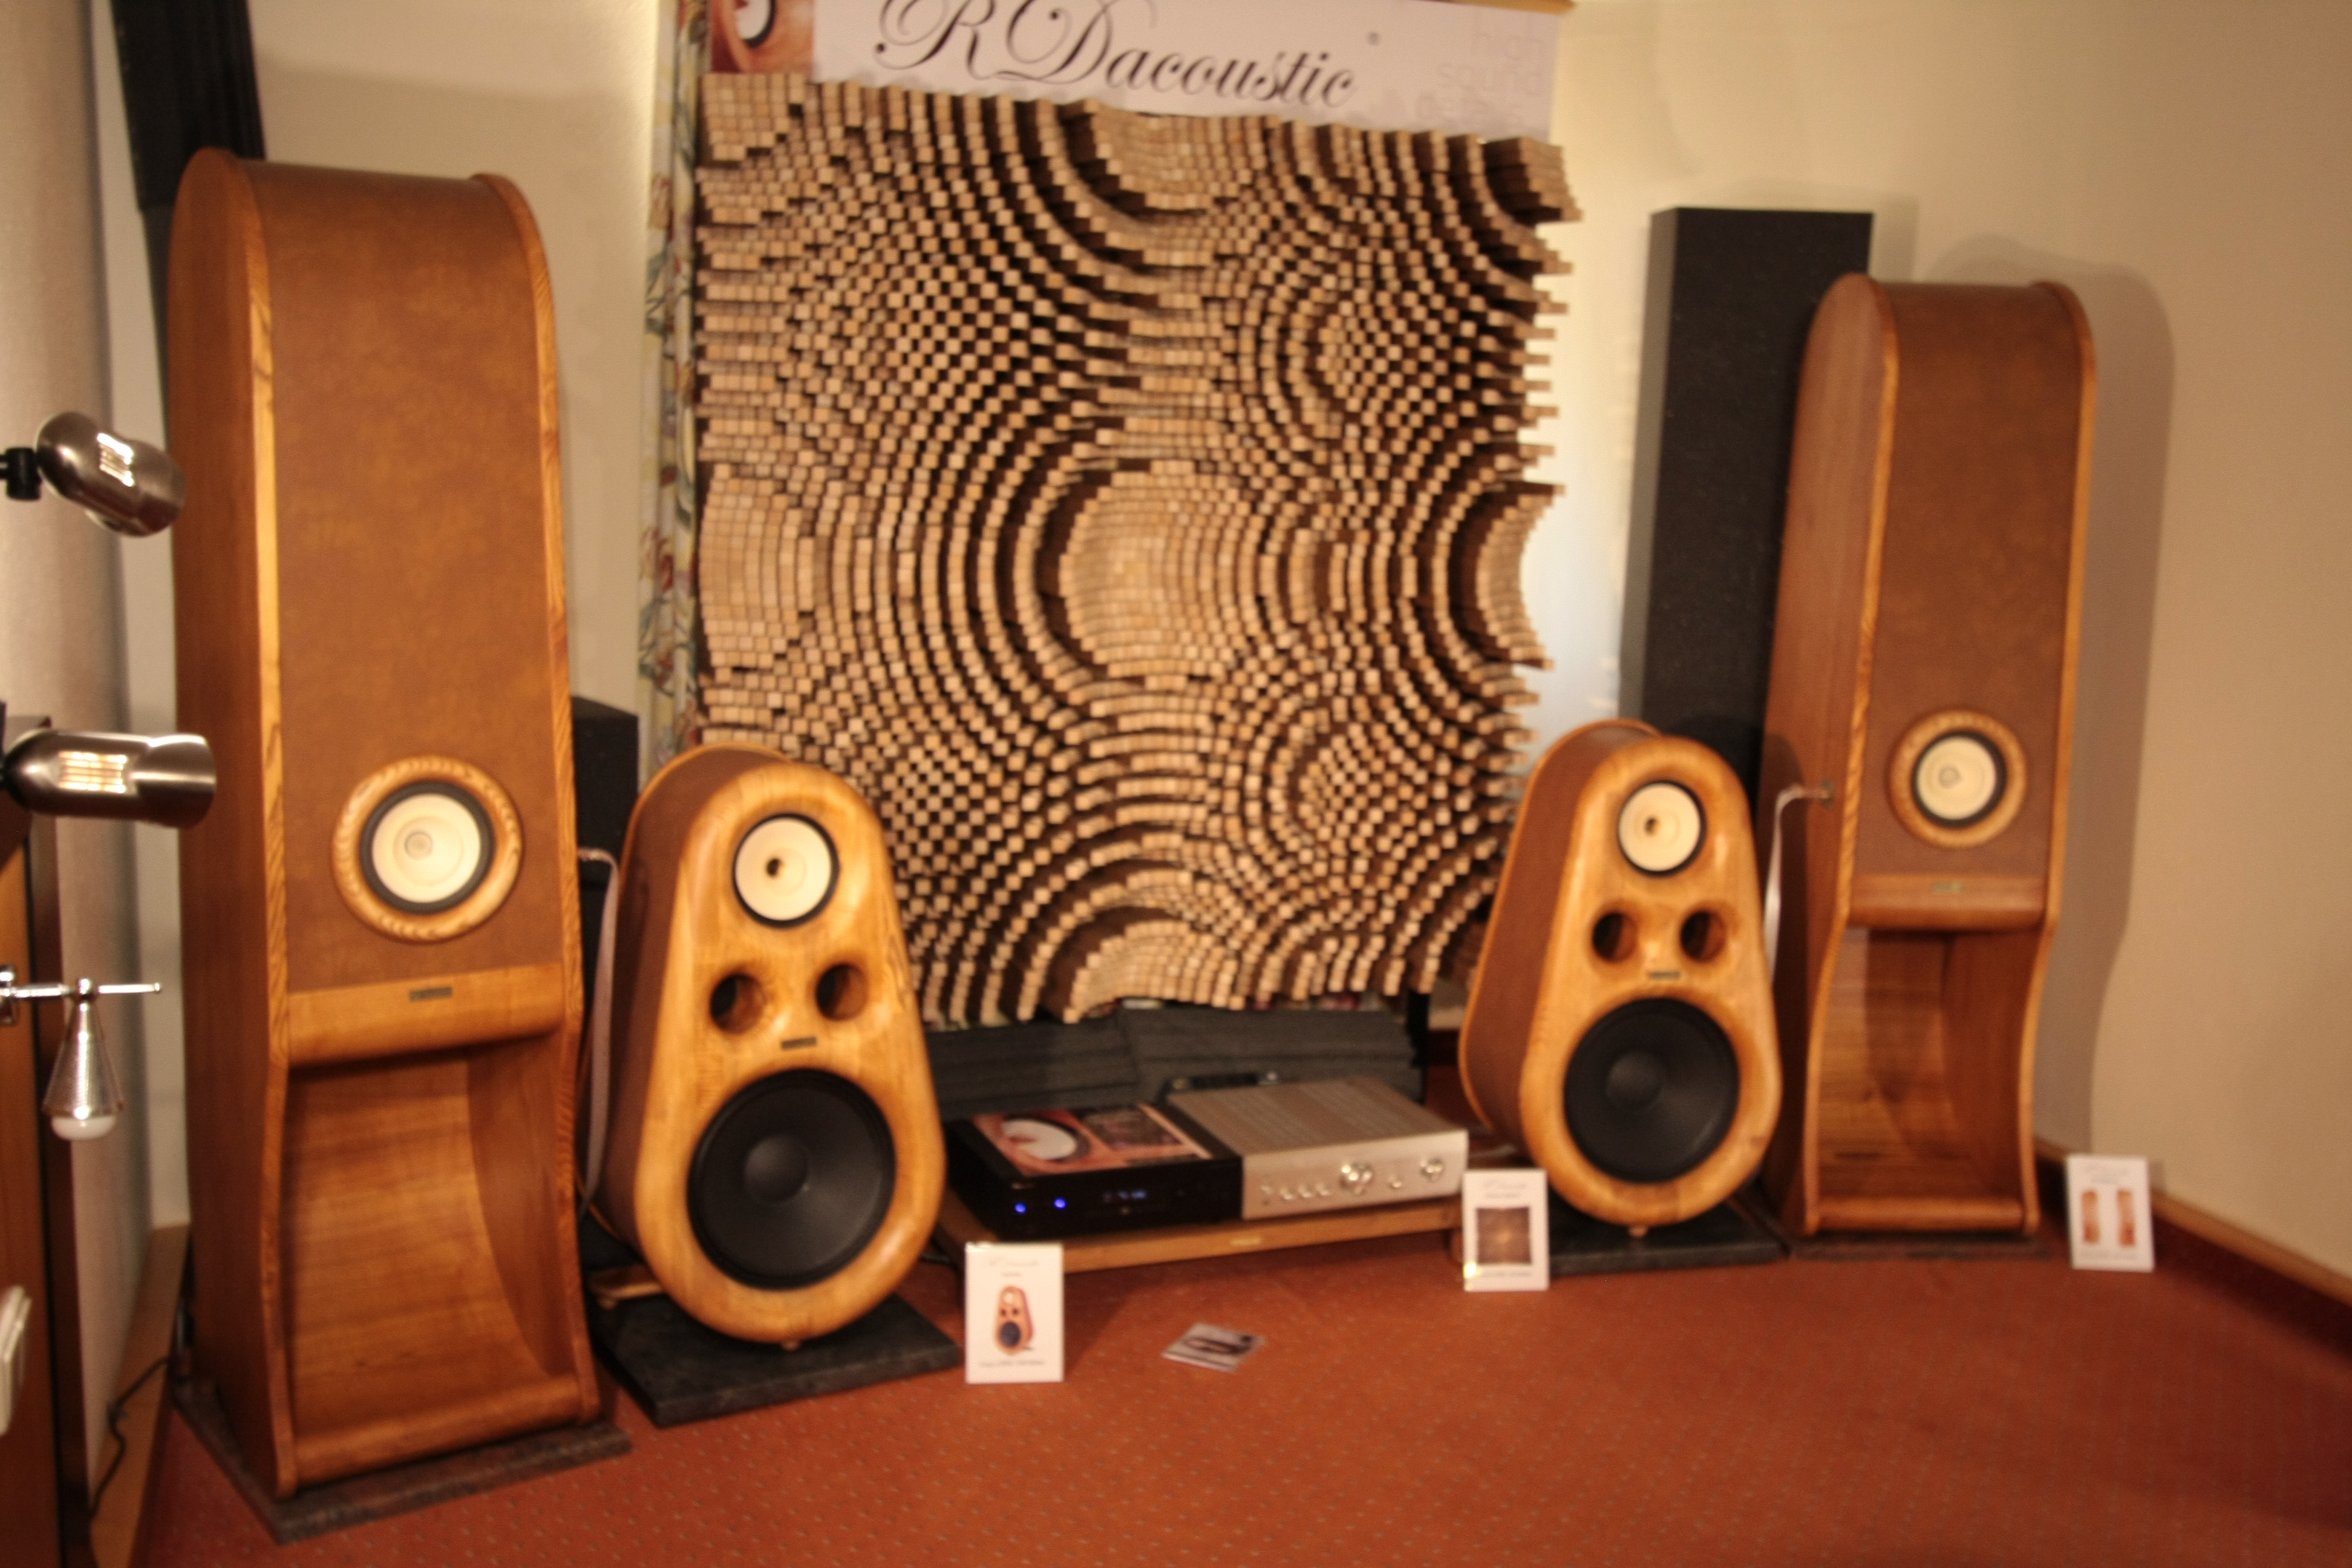 High End speakers Evolution, Euphoria for true HIFI stereo, acoustic Diffuser, HIFI, audio